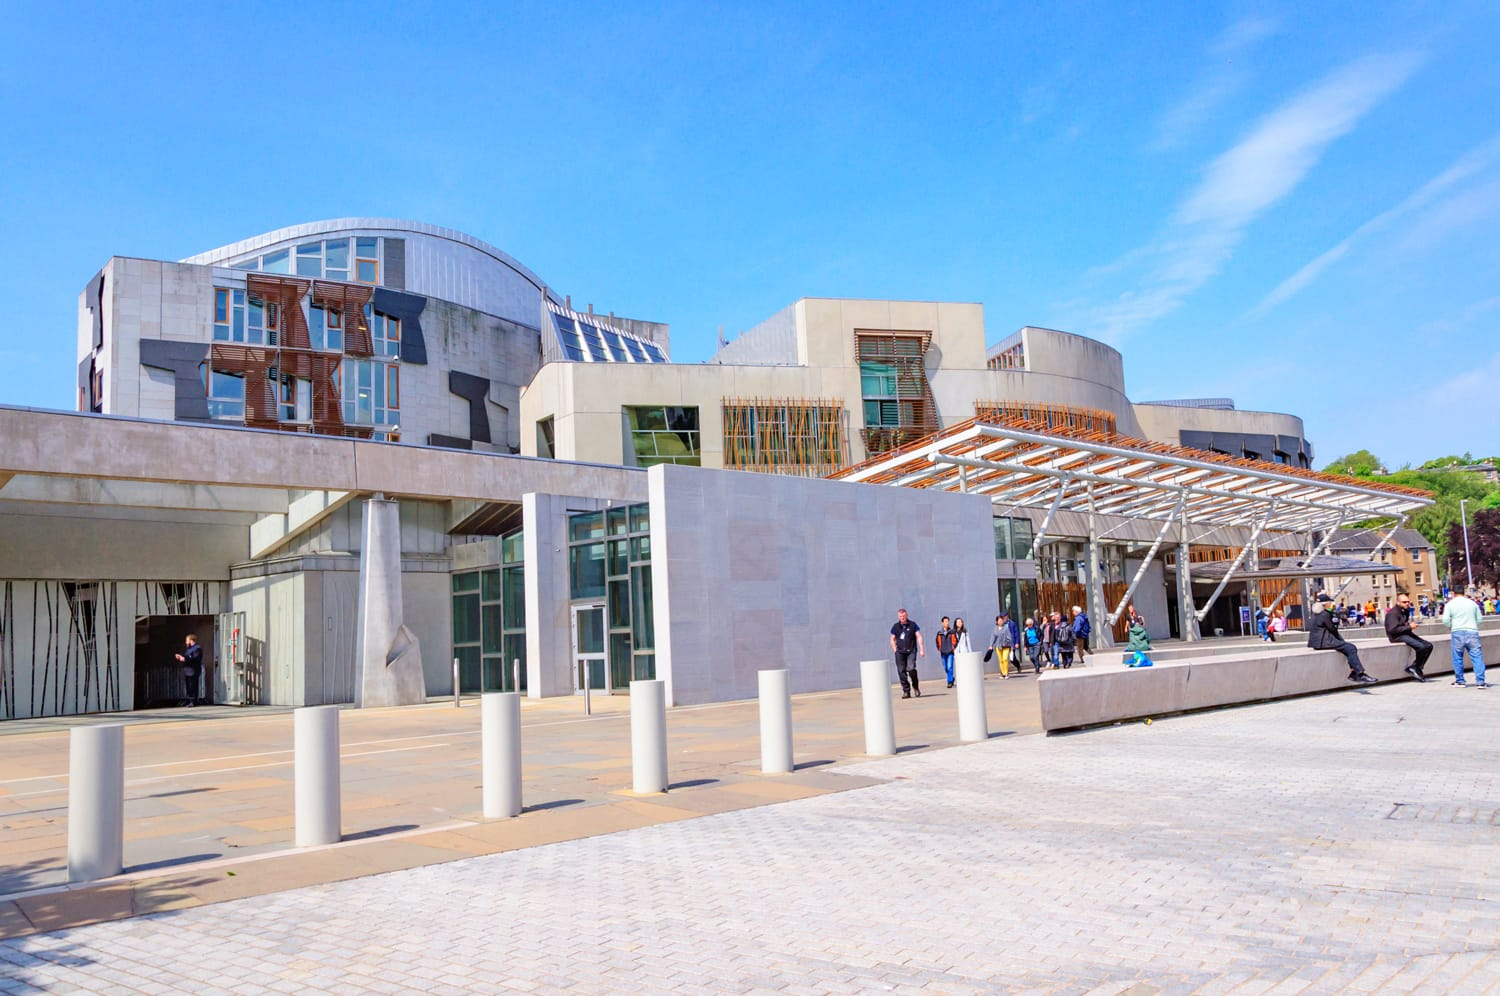 Exterior of the Scottish Parliament Building, Holyrood, Edinburgh, Scotland